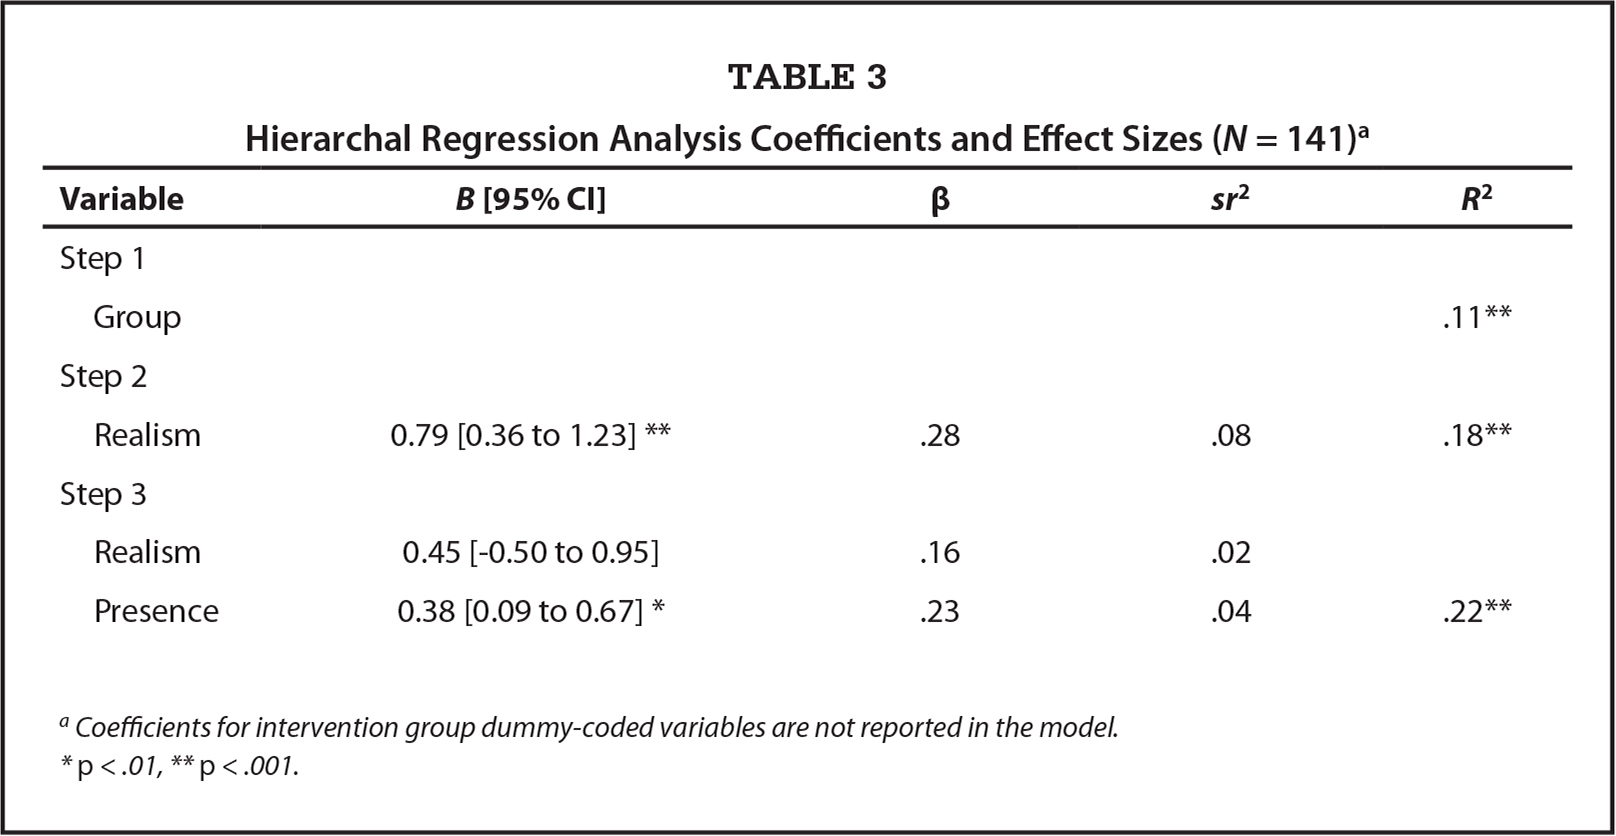 Hierarchal Regression Analysis Coefficients and Effect Sizes (N = 141)a